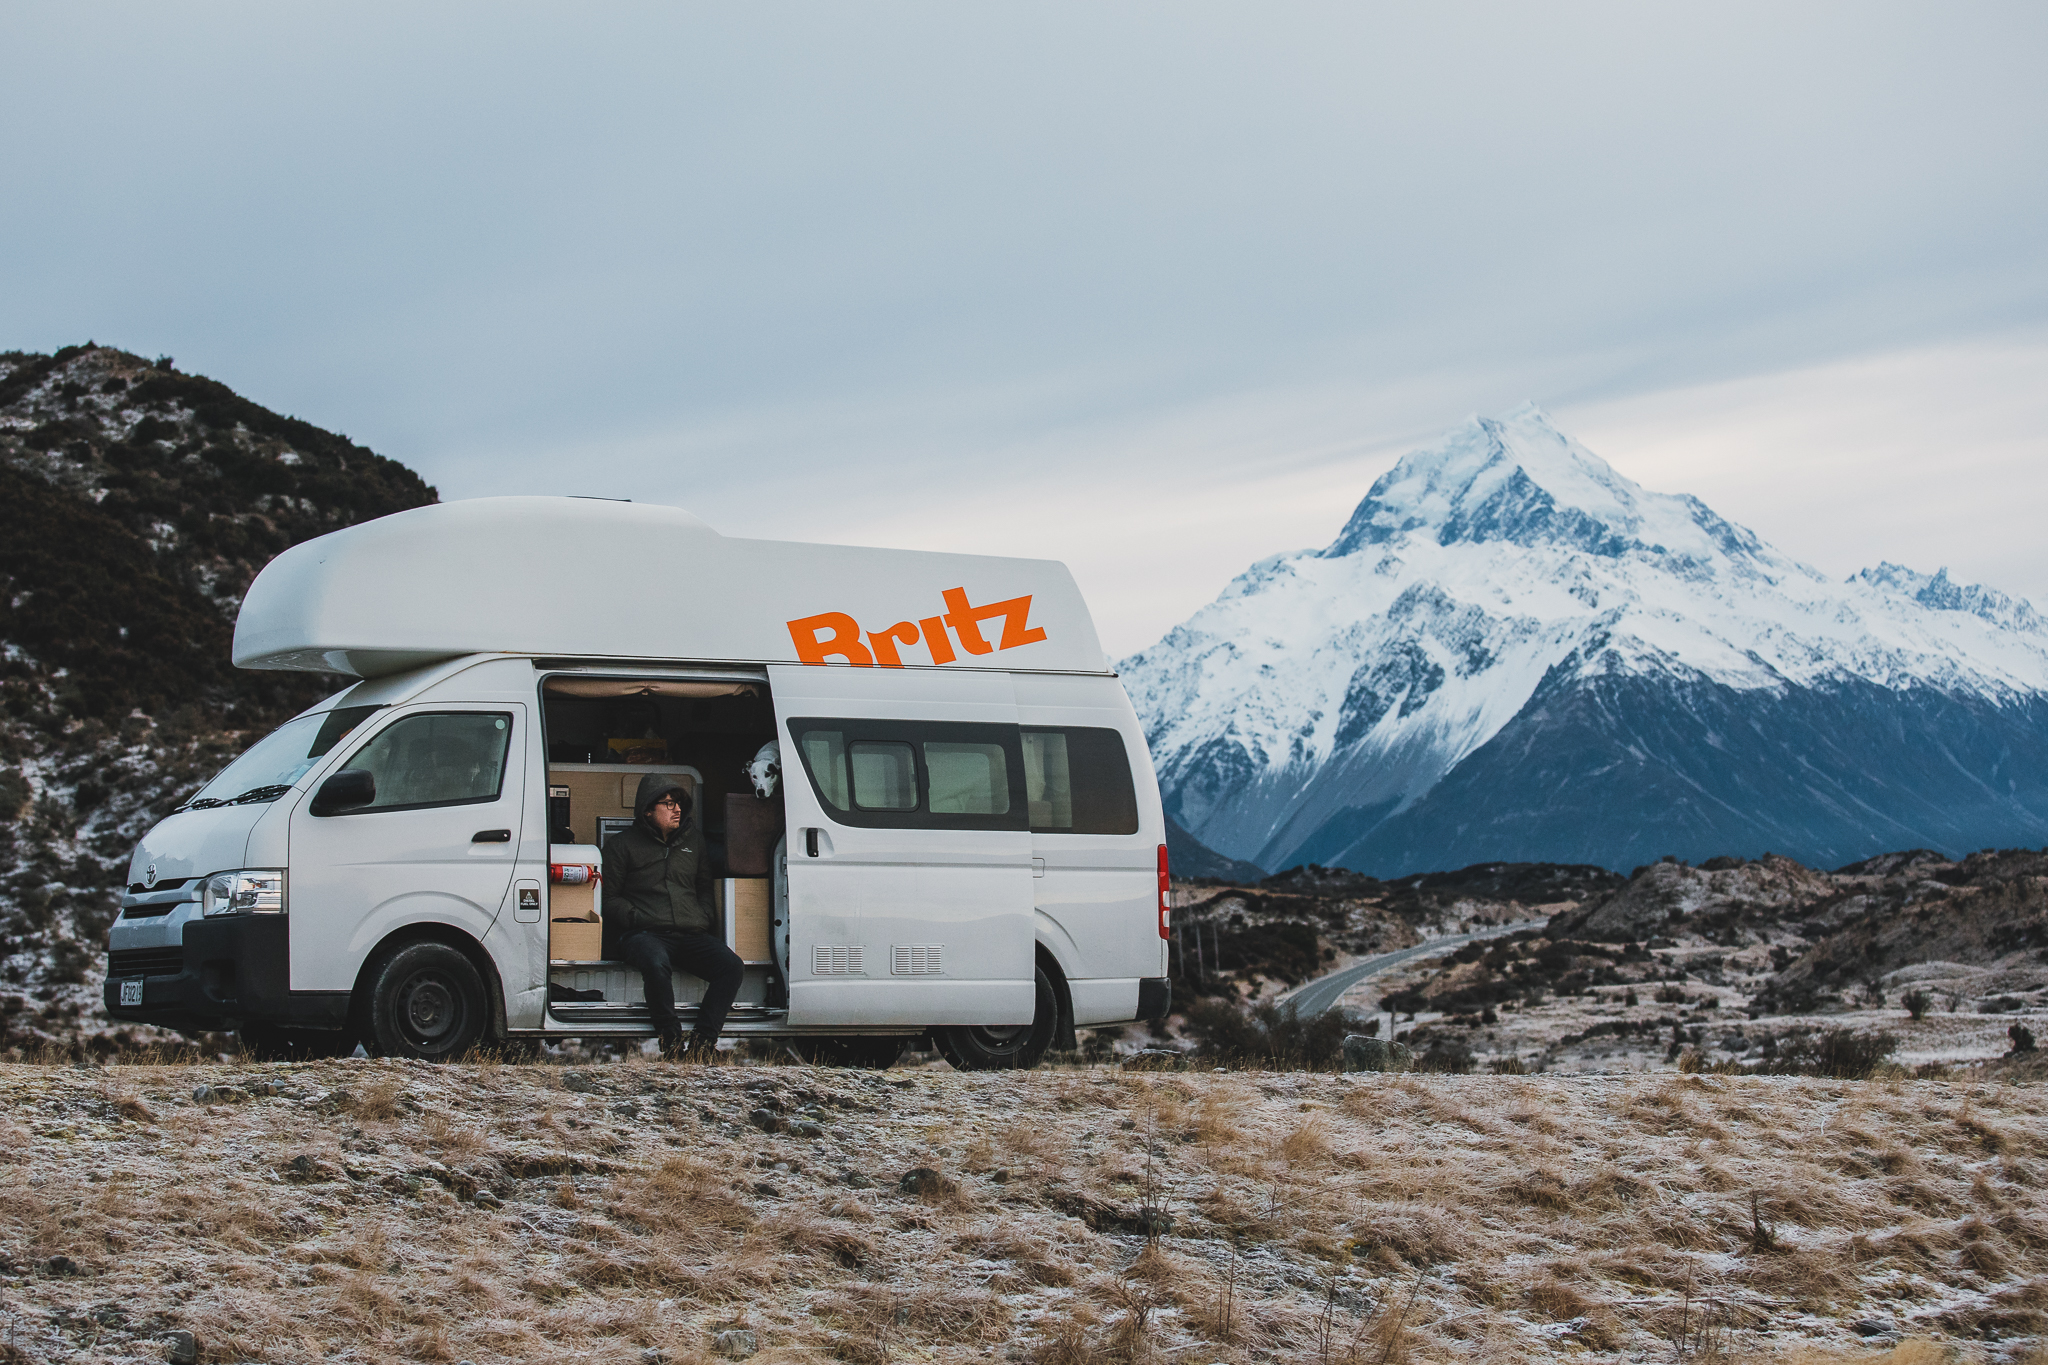 A man on a roadtrip holiday sits in a campervan in front of a mountain